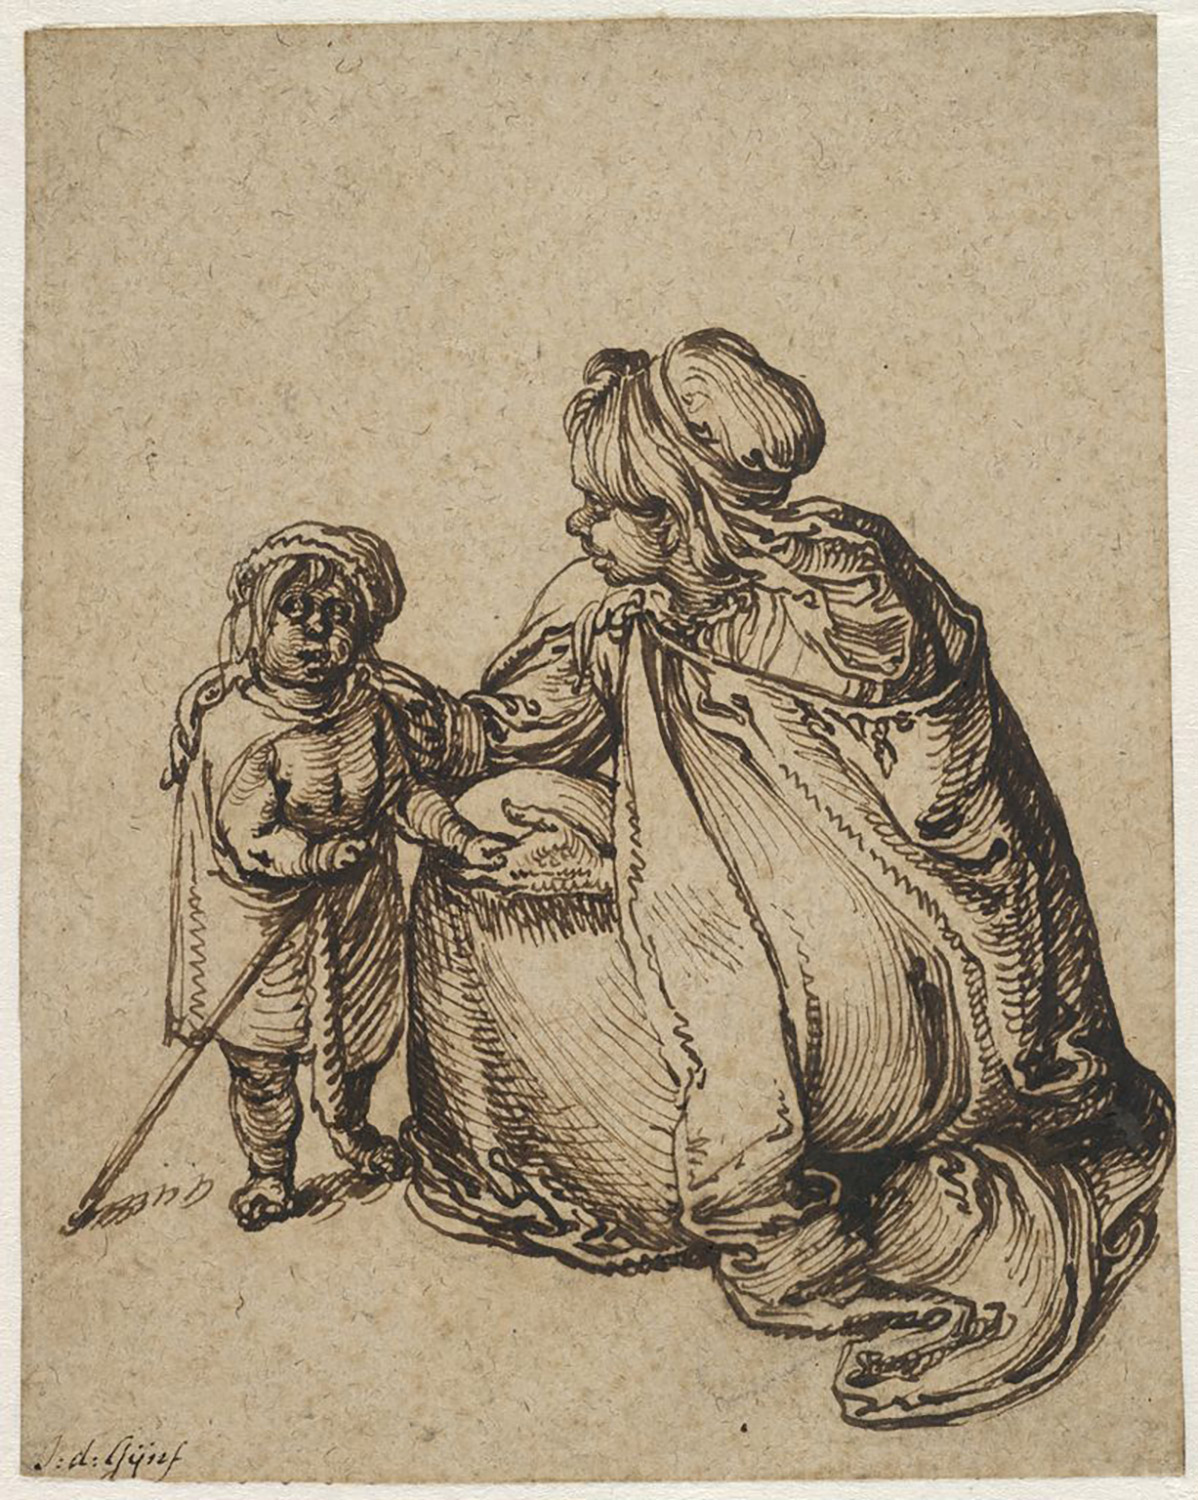 Jacques de Gheyn II, A Roma Woman with a Child, c. 1604. Brown ink and black chalk on paper. The Maida and George Abrams Collection, Fogg Art Museum, Harvard University, Cambridge, Massachusetts, Promised gift, 25.1998.10.